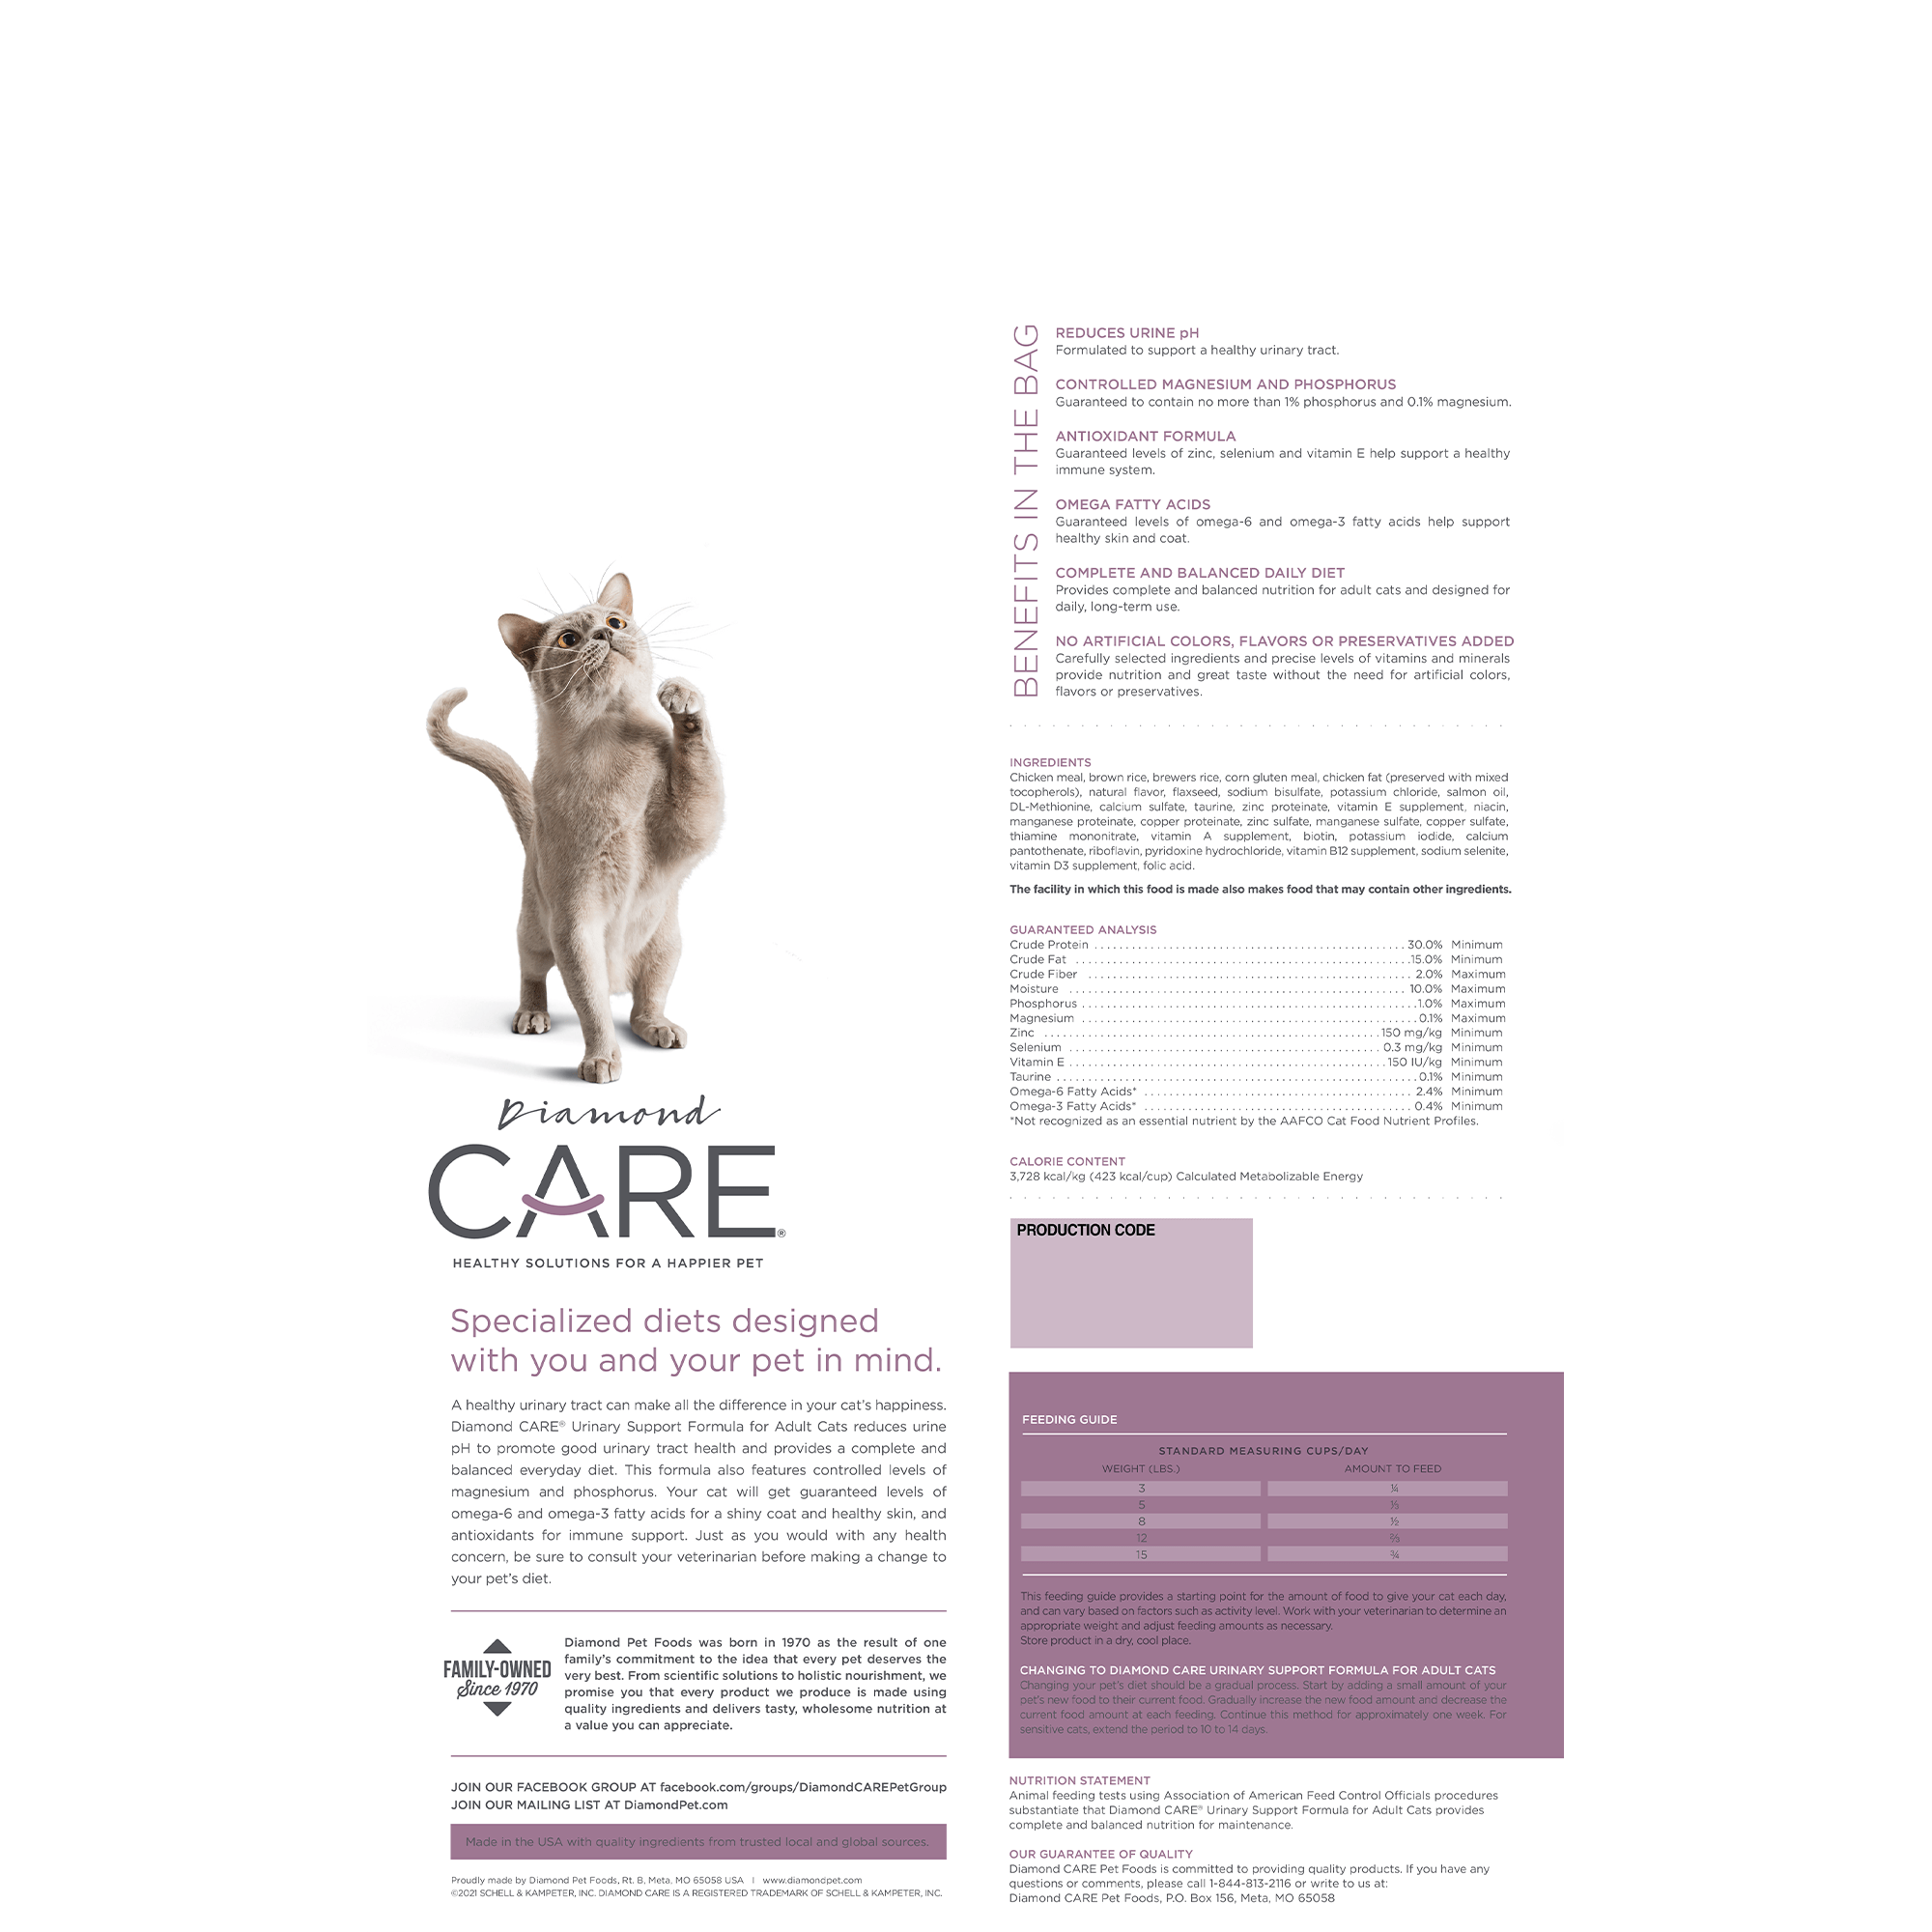 Urinary Support Cat bag back | Diamond CARE